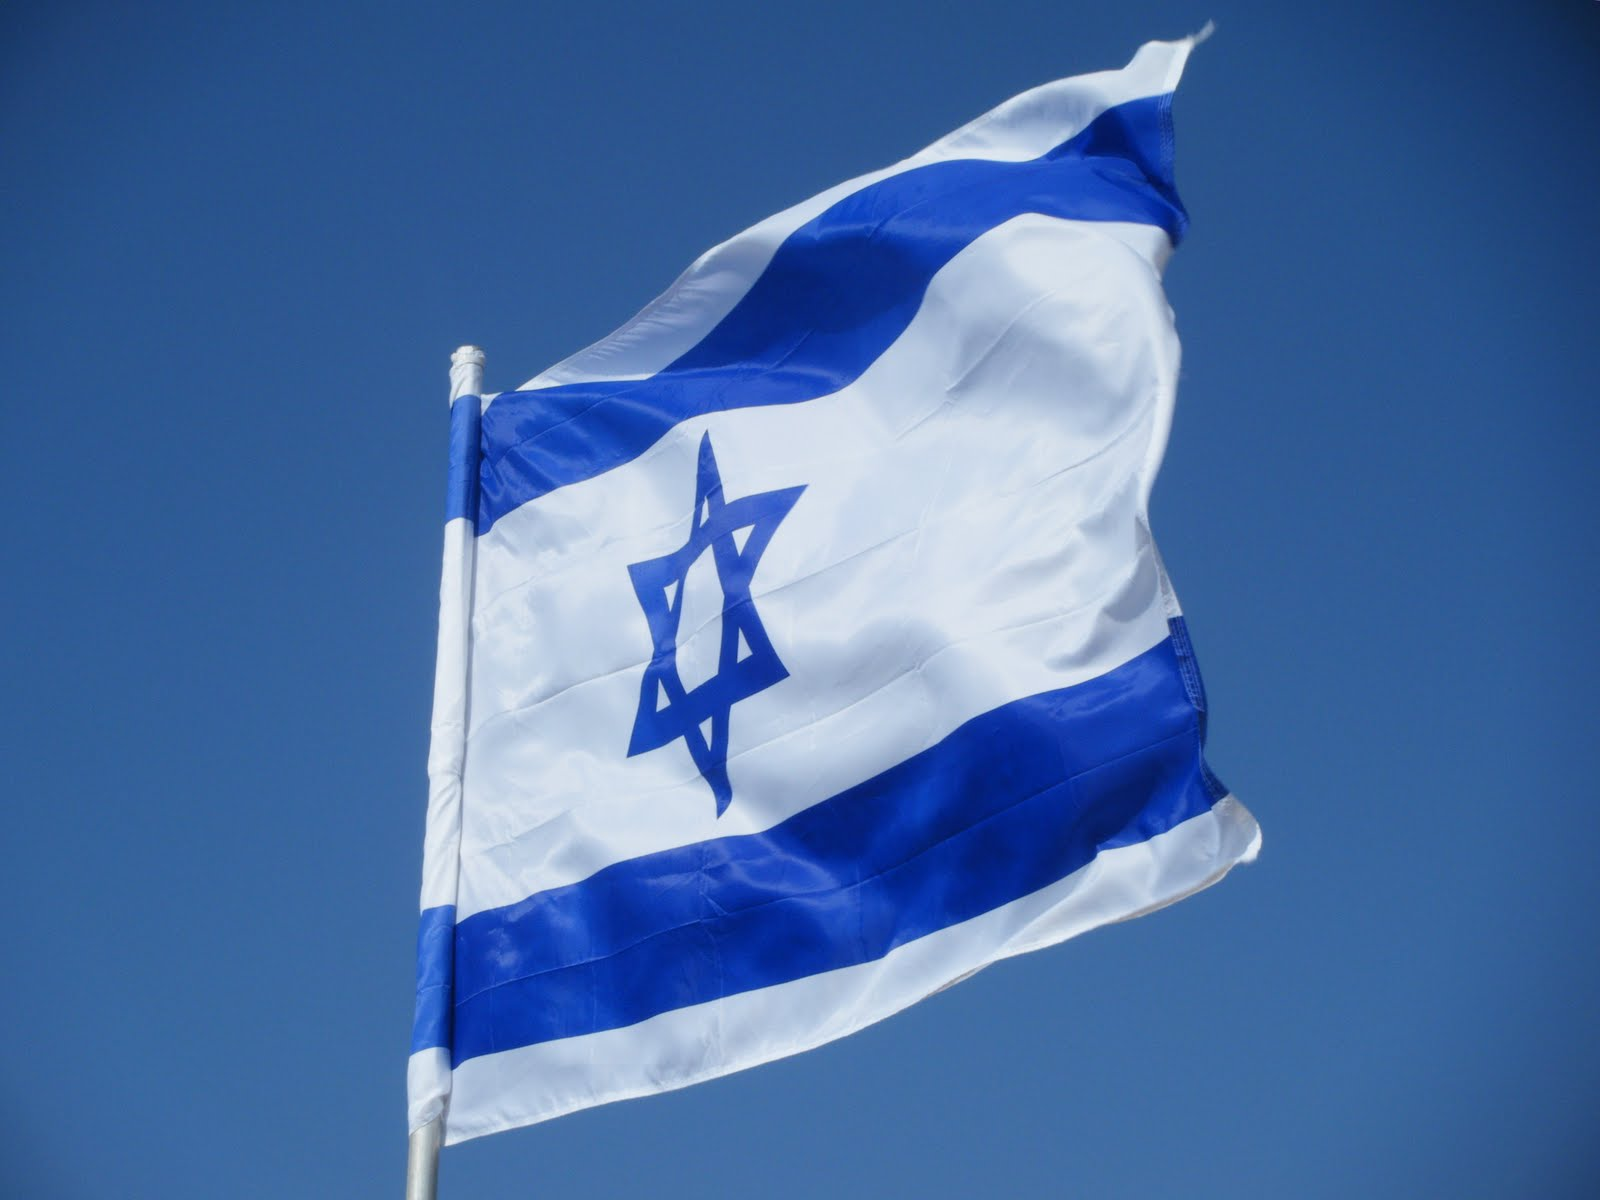 Wallpaper Flags Of Israel Jancok